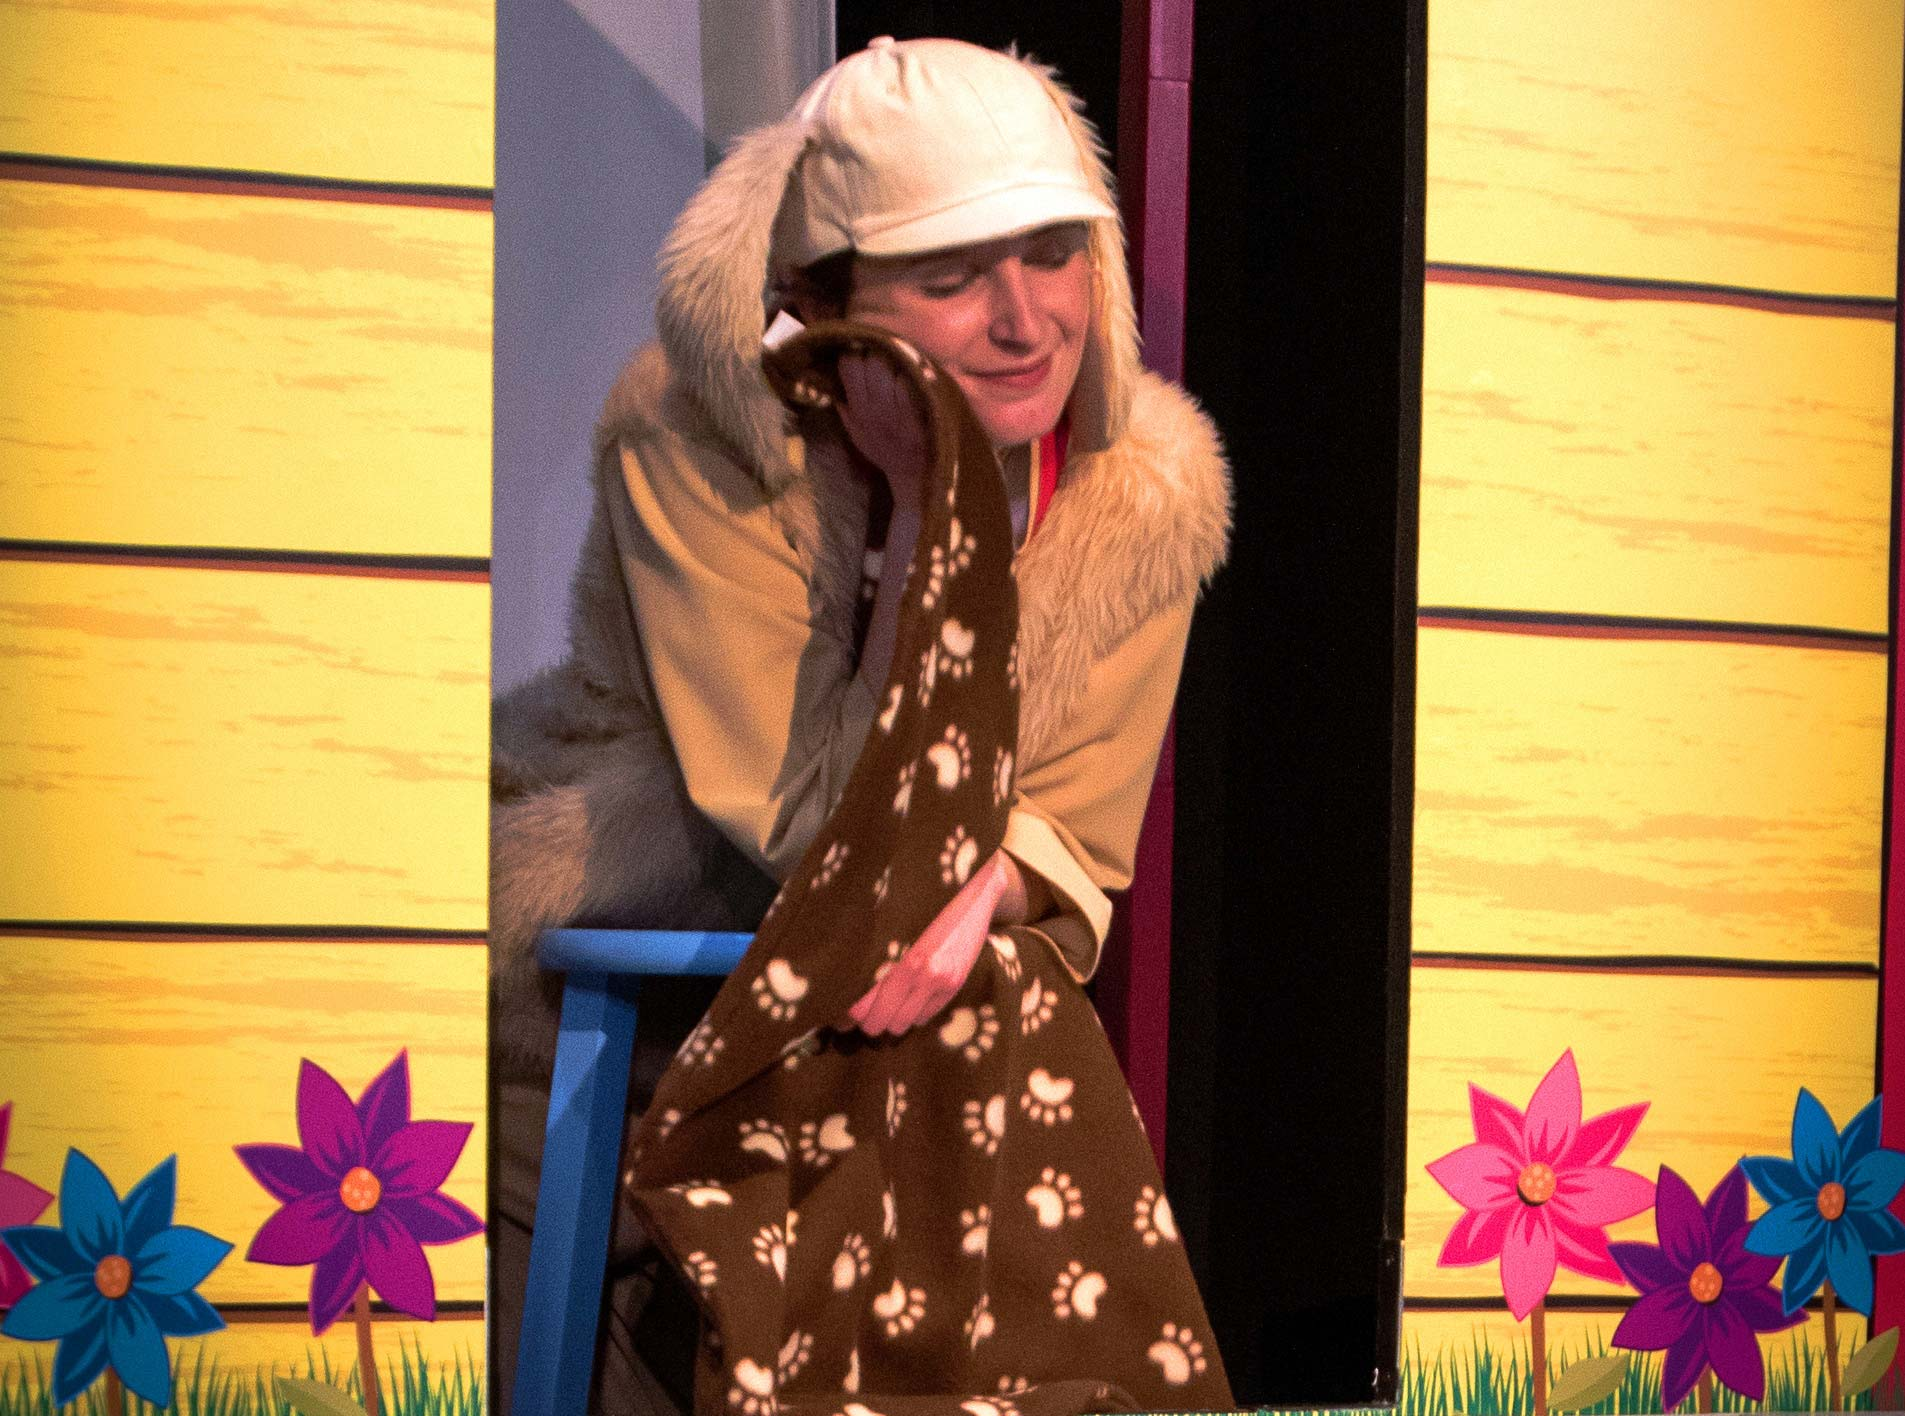 ArtsPower National Touring Theater brings   Biscuit The Little Yellow Puppy  to Tribeca PAC on Saturday, December 9th